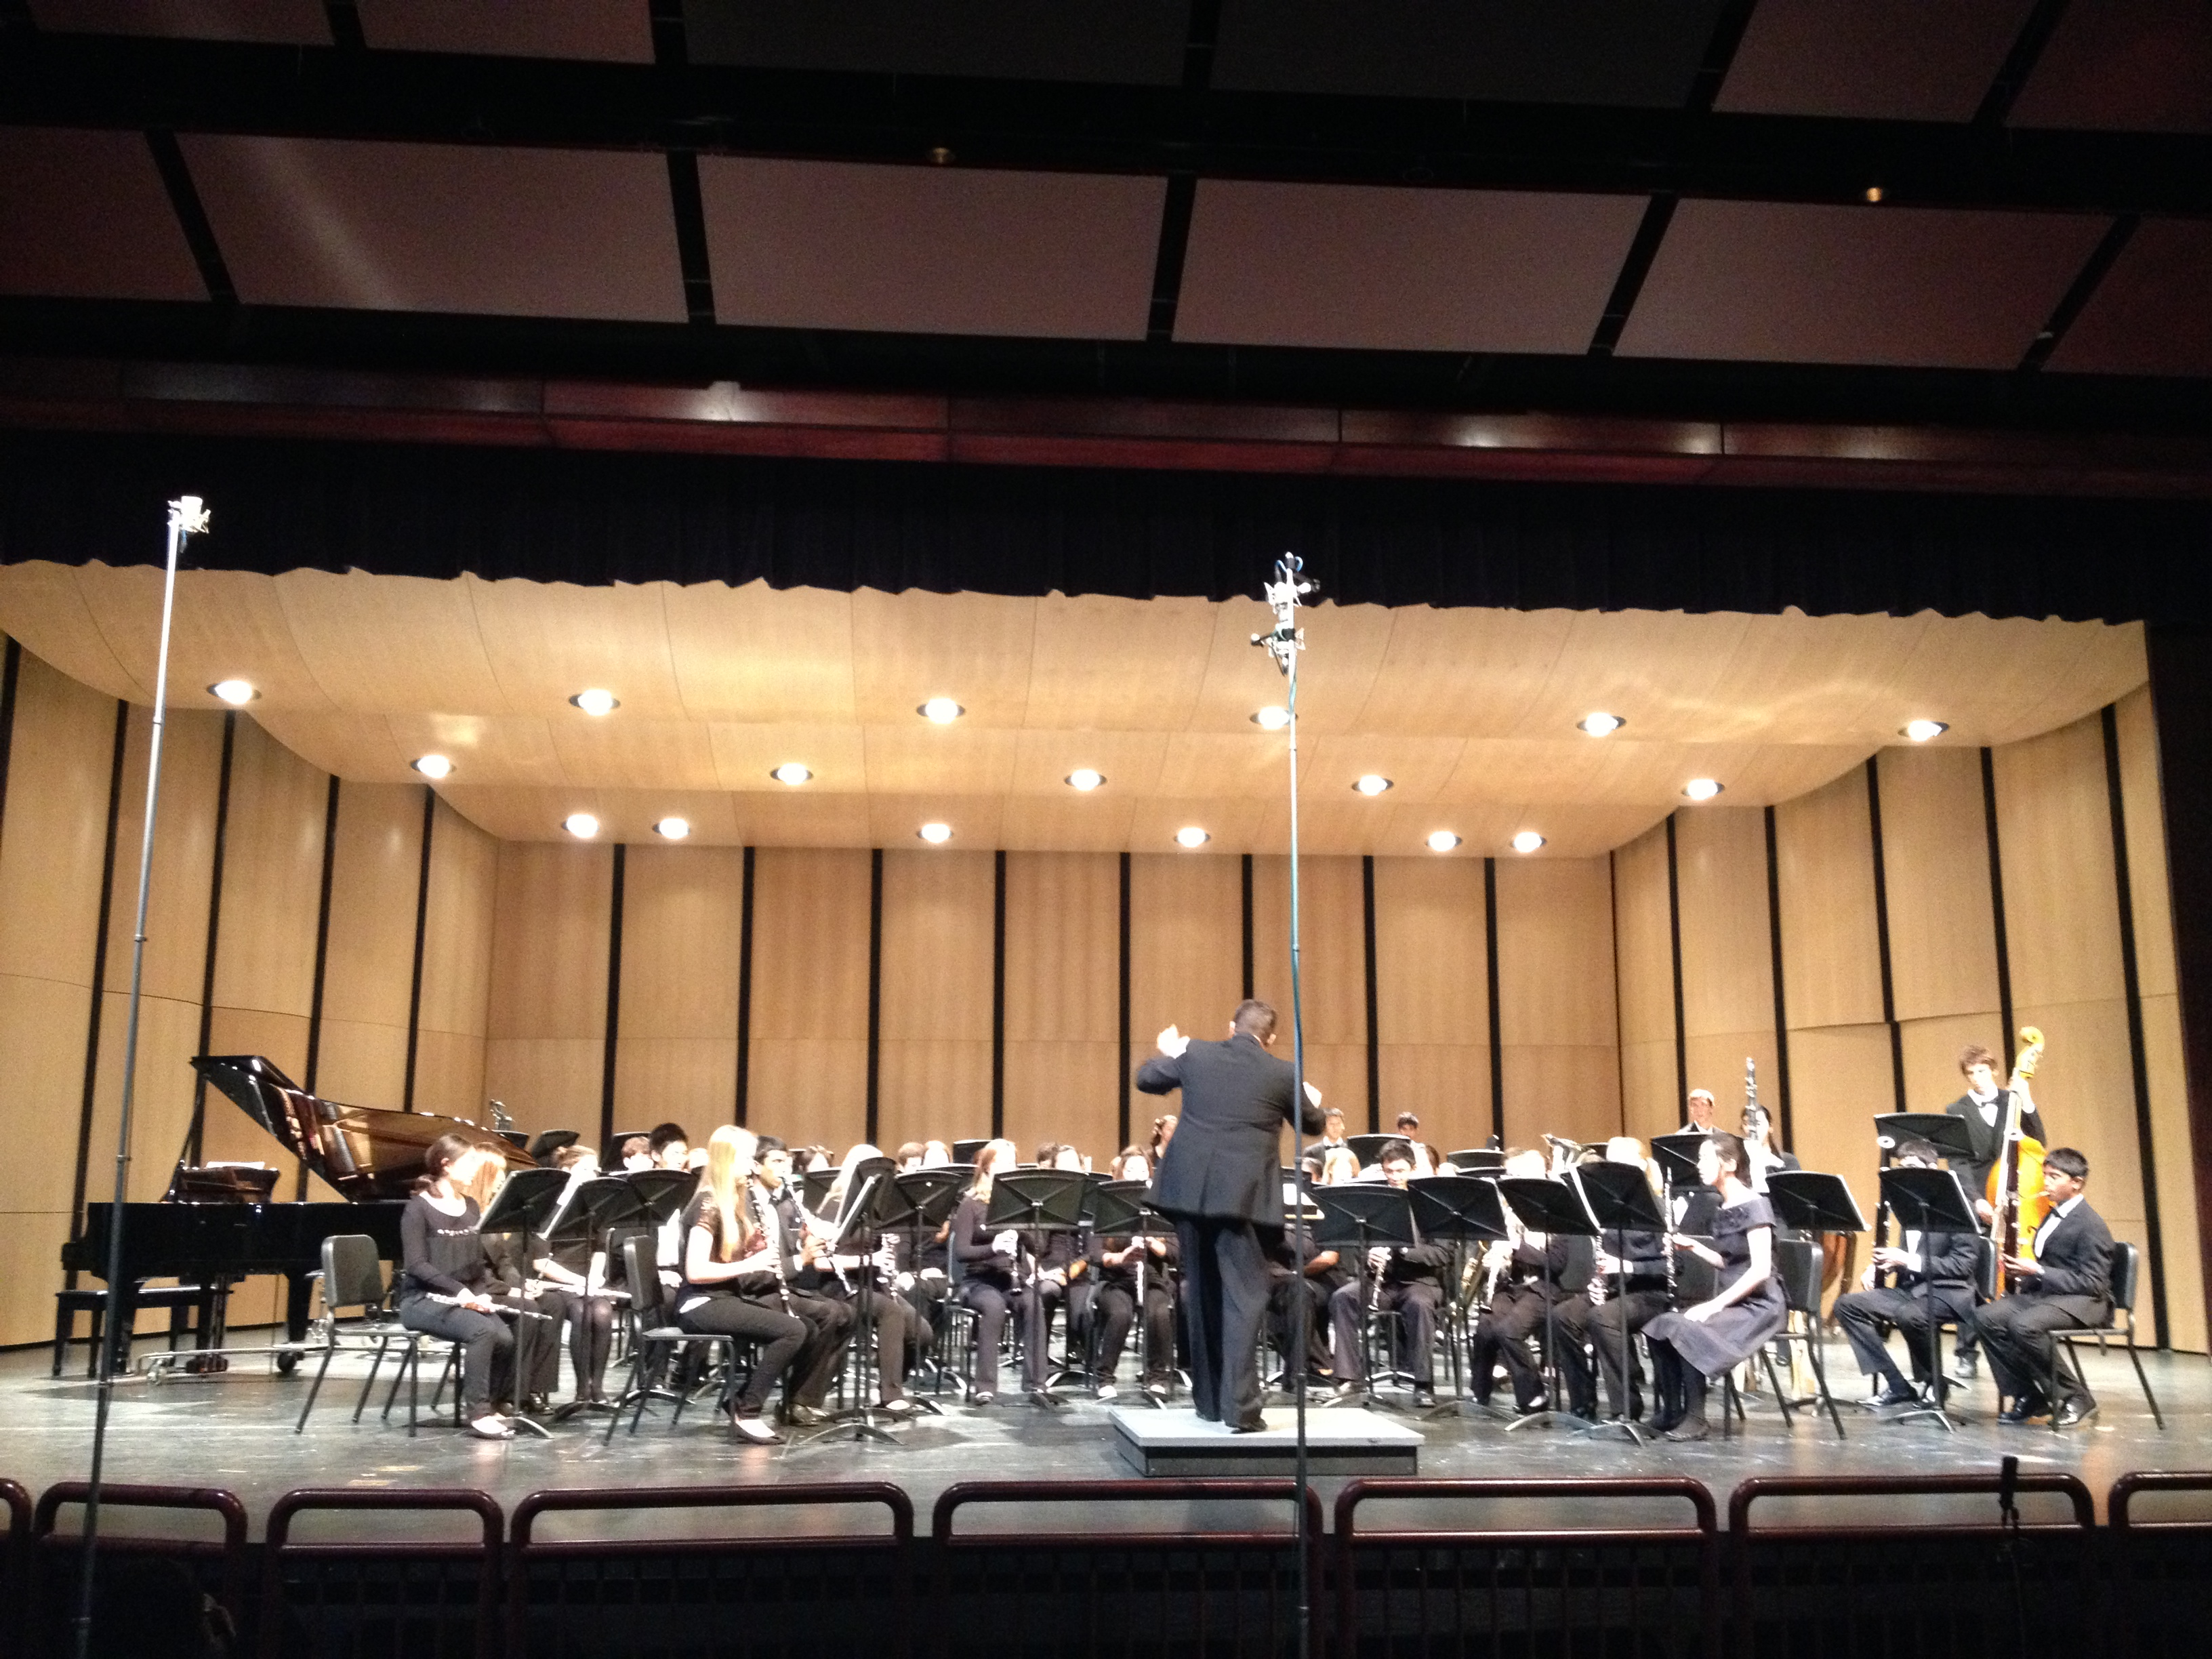 The Symphonic Band performed their first concert of the year on the night of Nov. 19.